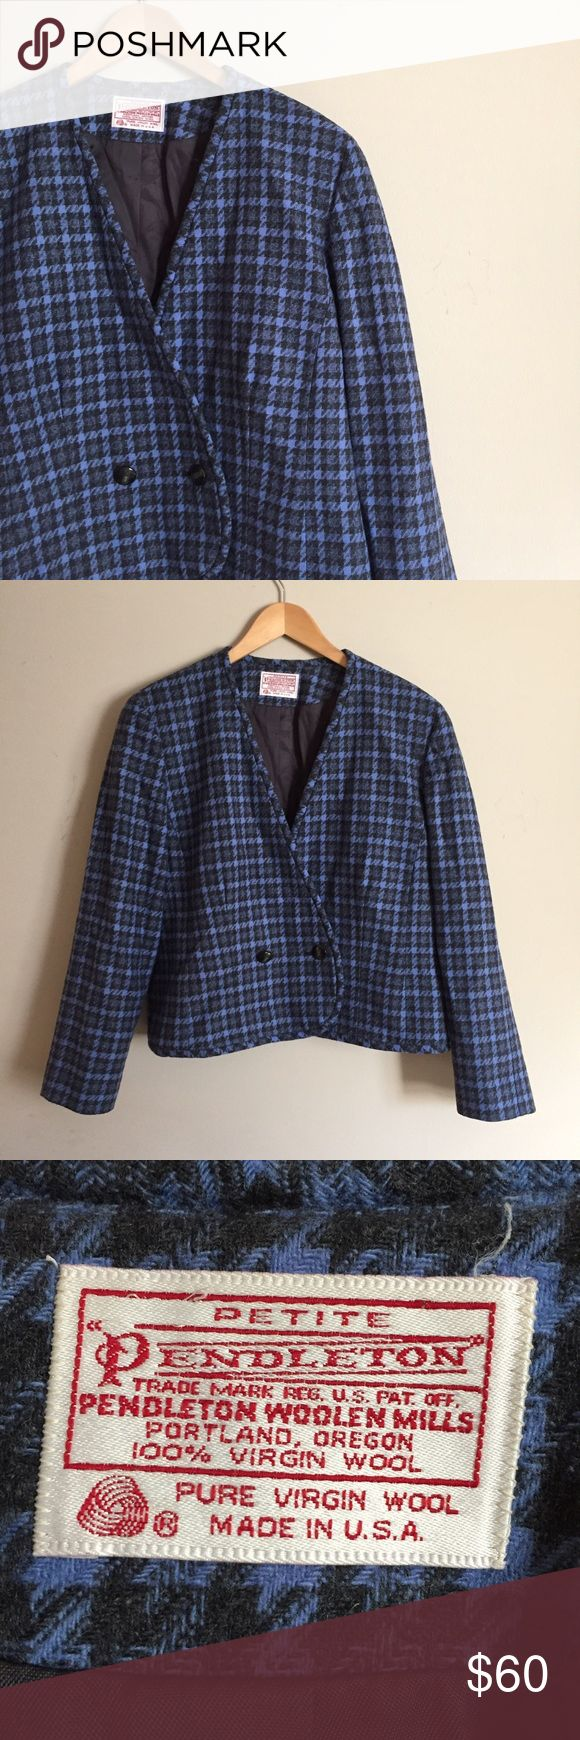 Vintage Pendleton Wool Houndstooth Plaid Blazer Chic vintage blazer in a blue & black houndstooth plaid. 100% wool. Two button closure. Cropped length. Marked petite; would fit sizes 14-18 I think. Pendleton Jackets & Coats Blazers